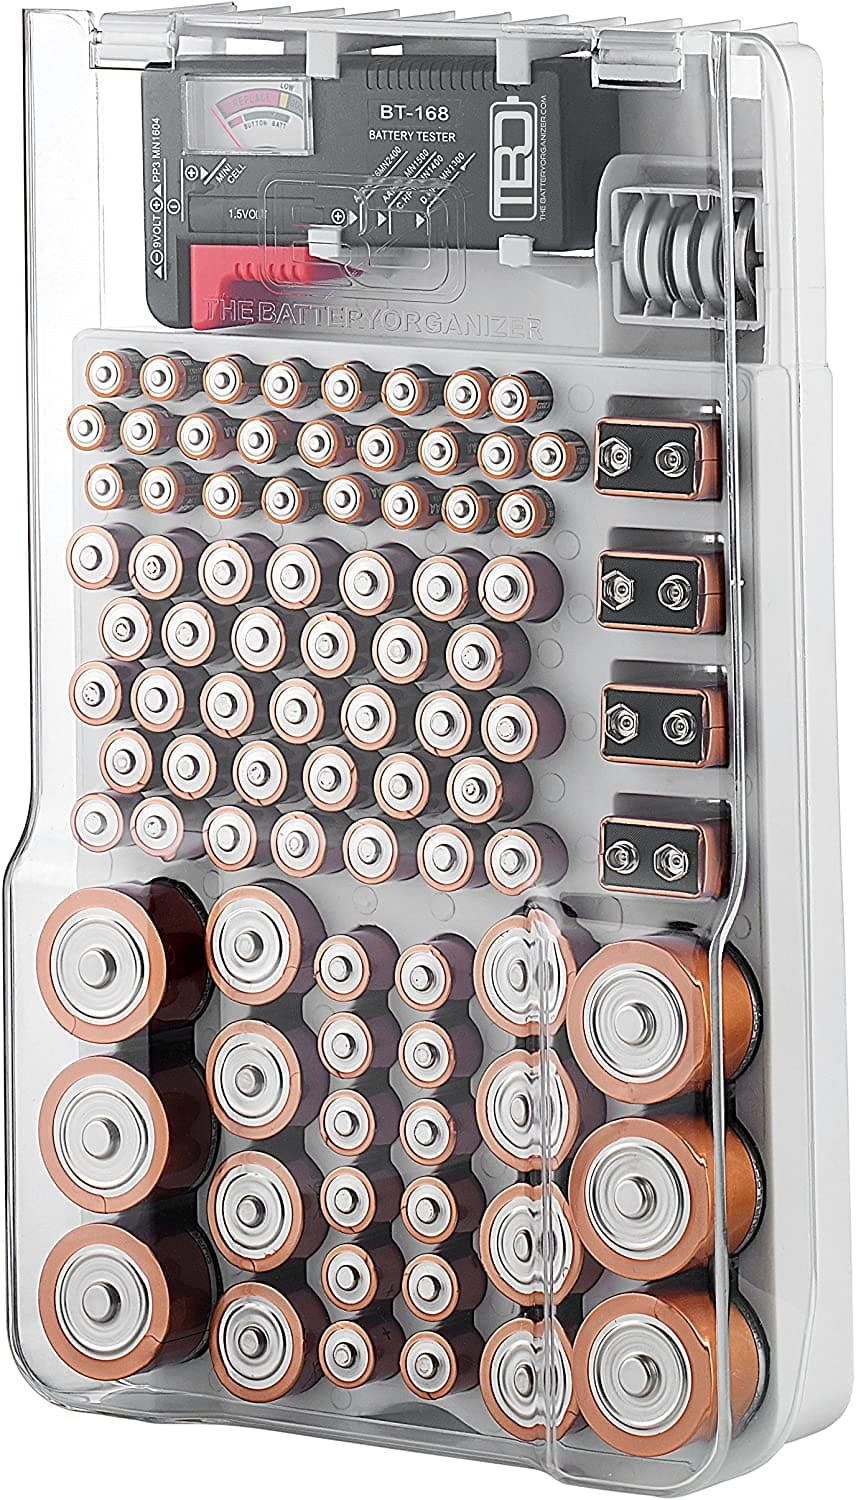 The Battery Organizer Storage Case with Hinged Clear Cover, Includes a Removable Battery Tester, Holds 93 Batteries Various Sizes. $12.99 @ Amazon